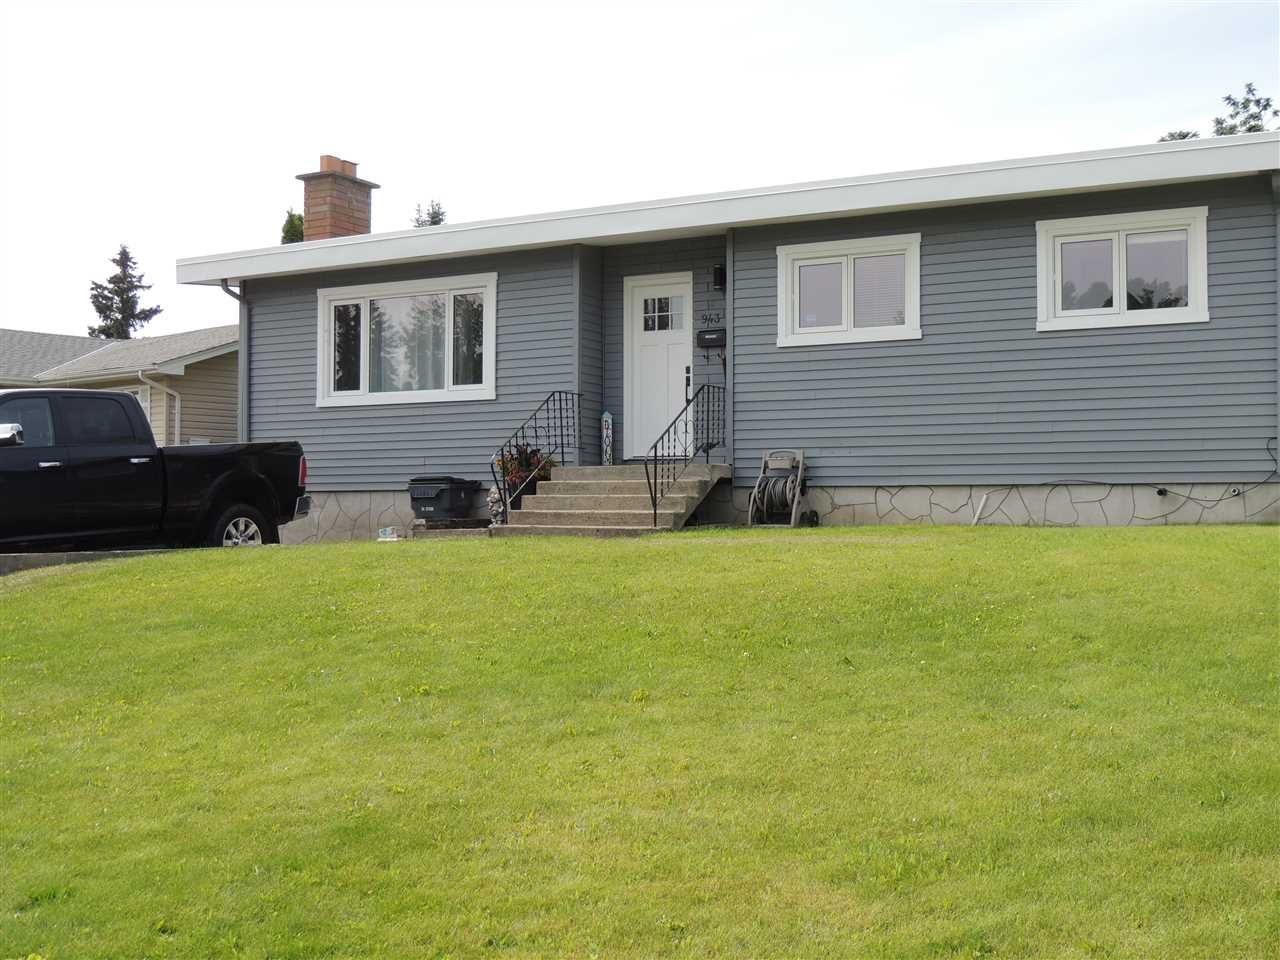 Main Photo: 943 VEDDER Crescent in Prince George: Spruceland House for sale (PG City West (Zone 71))  : MLS®# R2383544